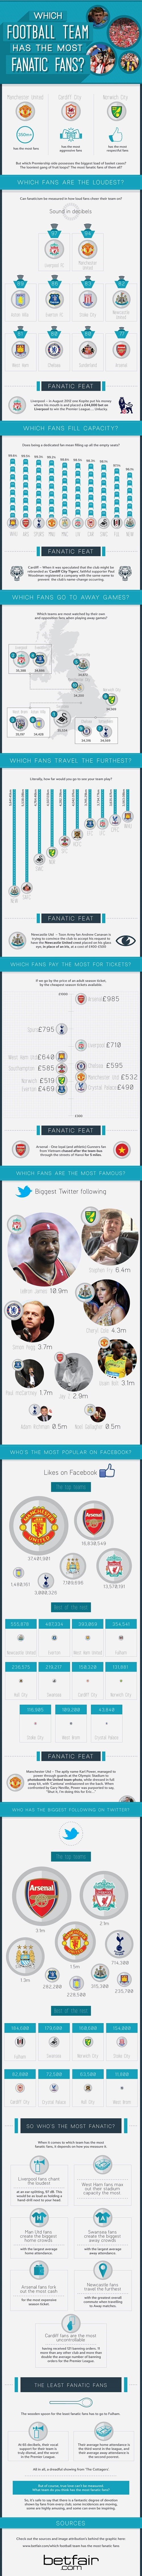 infographic fans sports soccer - 7992007680